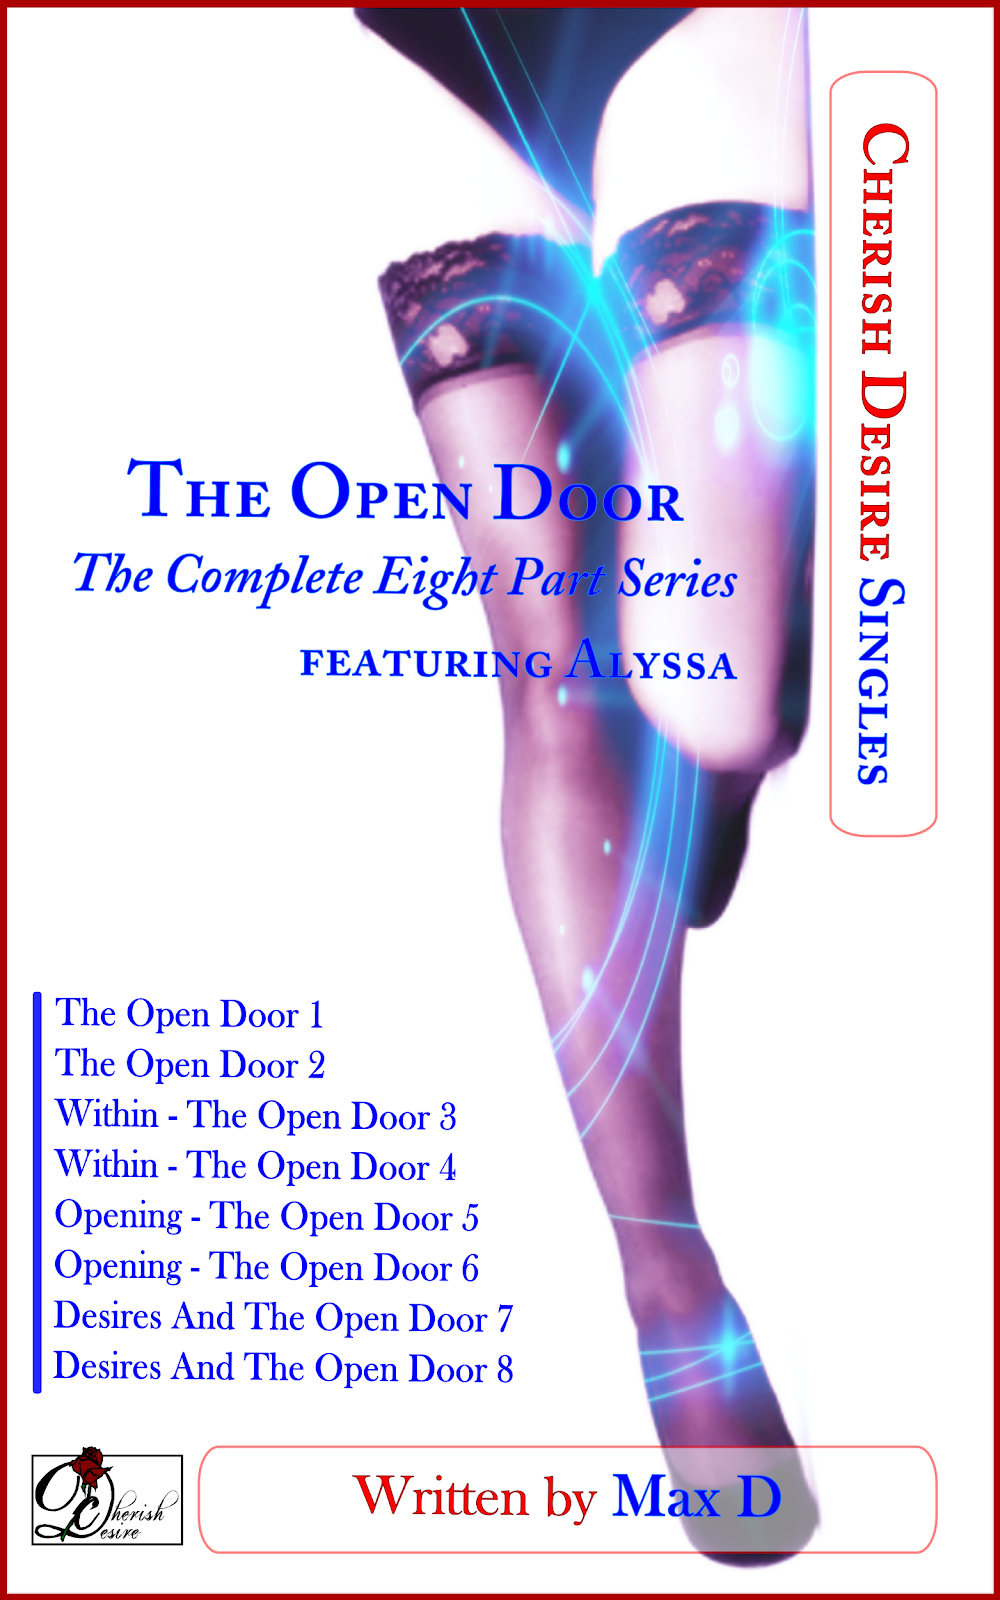 Cherish Desire Singles: The Open Door (The Complete Eight Part Series) featuring Alyssa, Alyssa, Tom, Max D, erotica